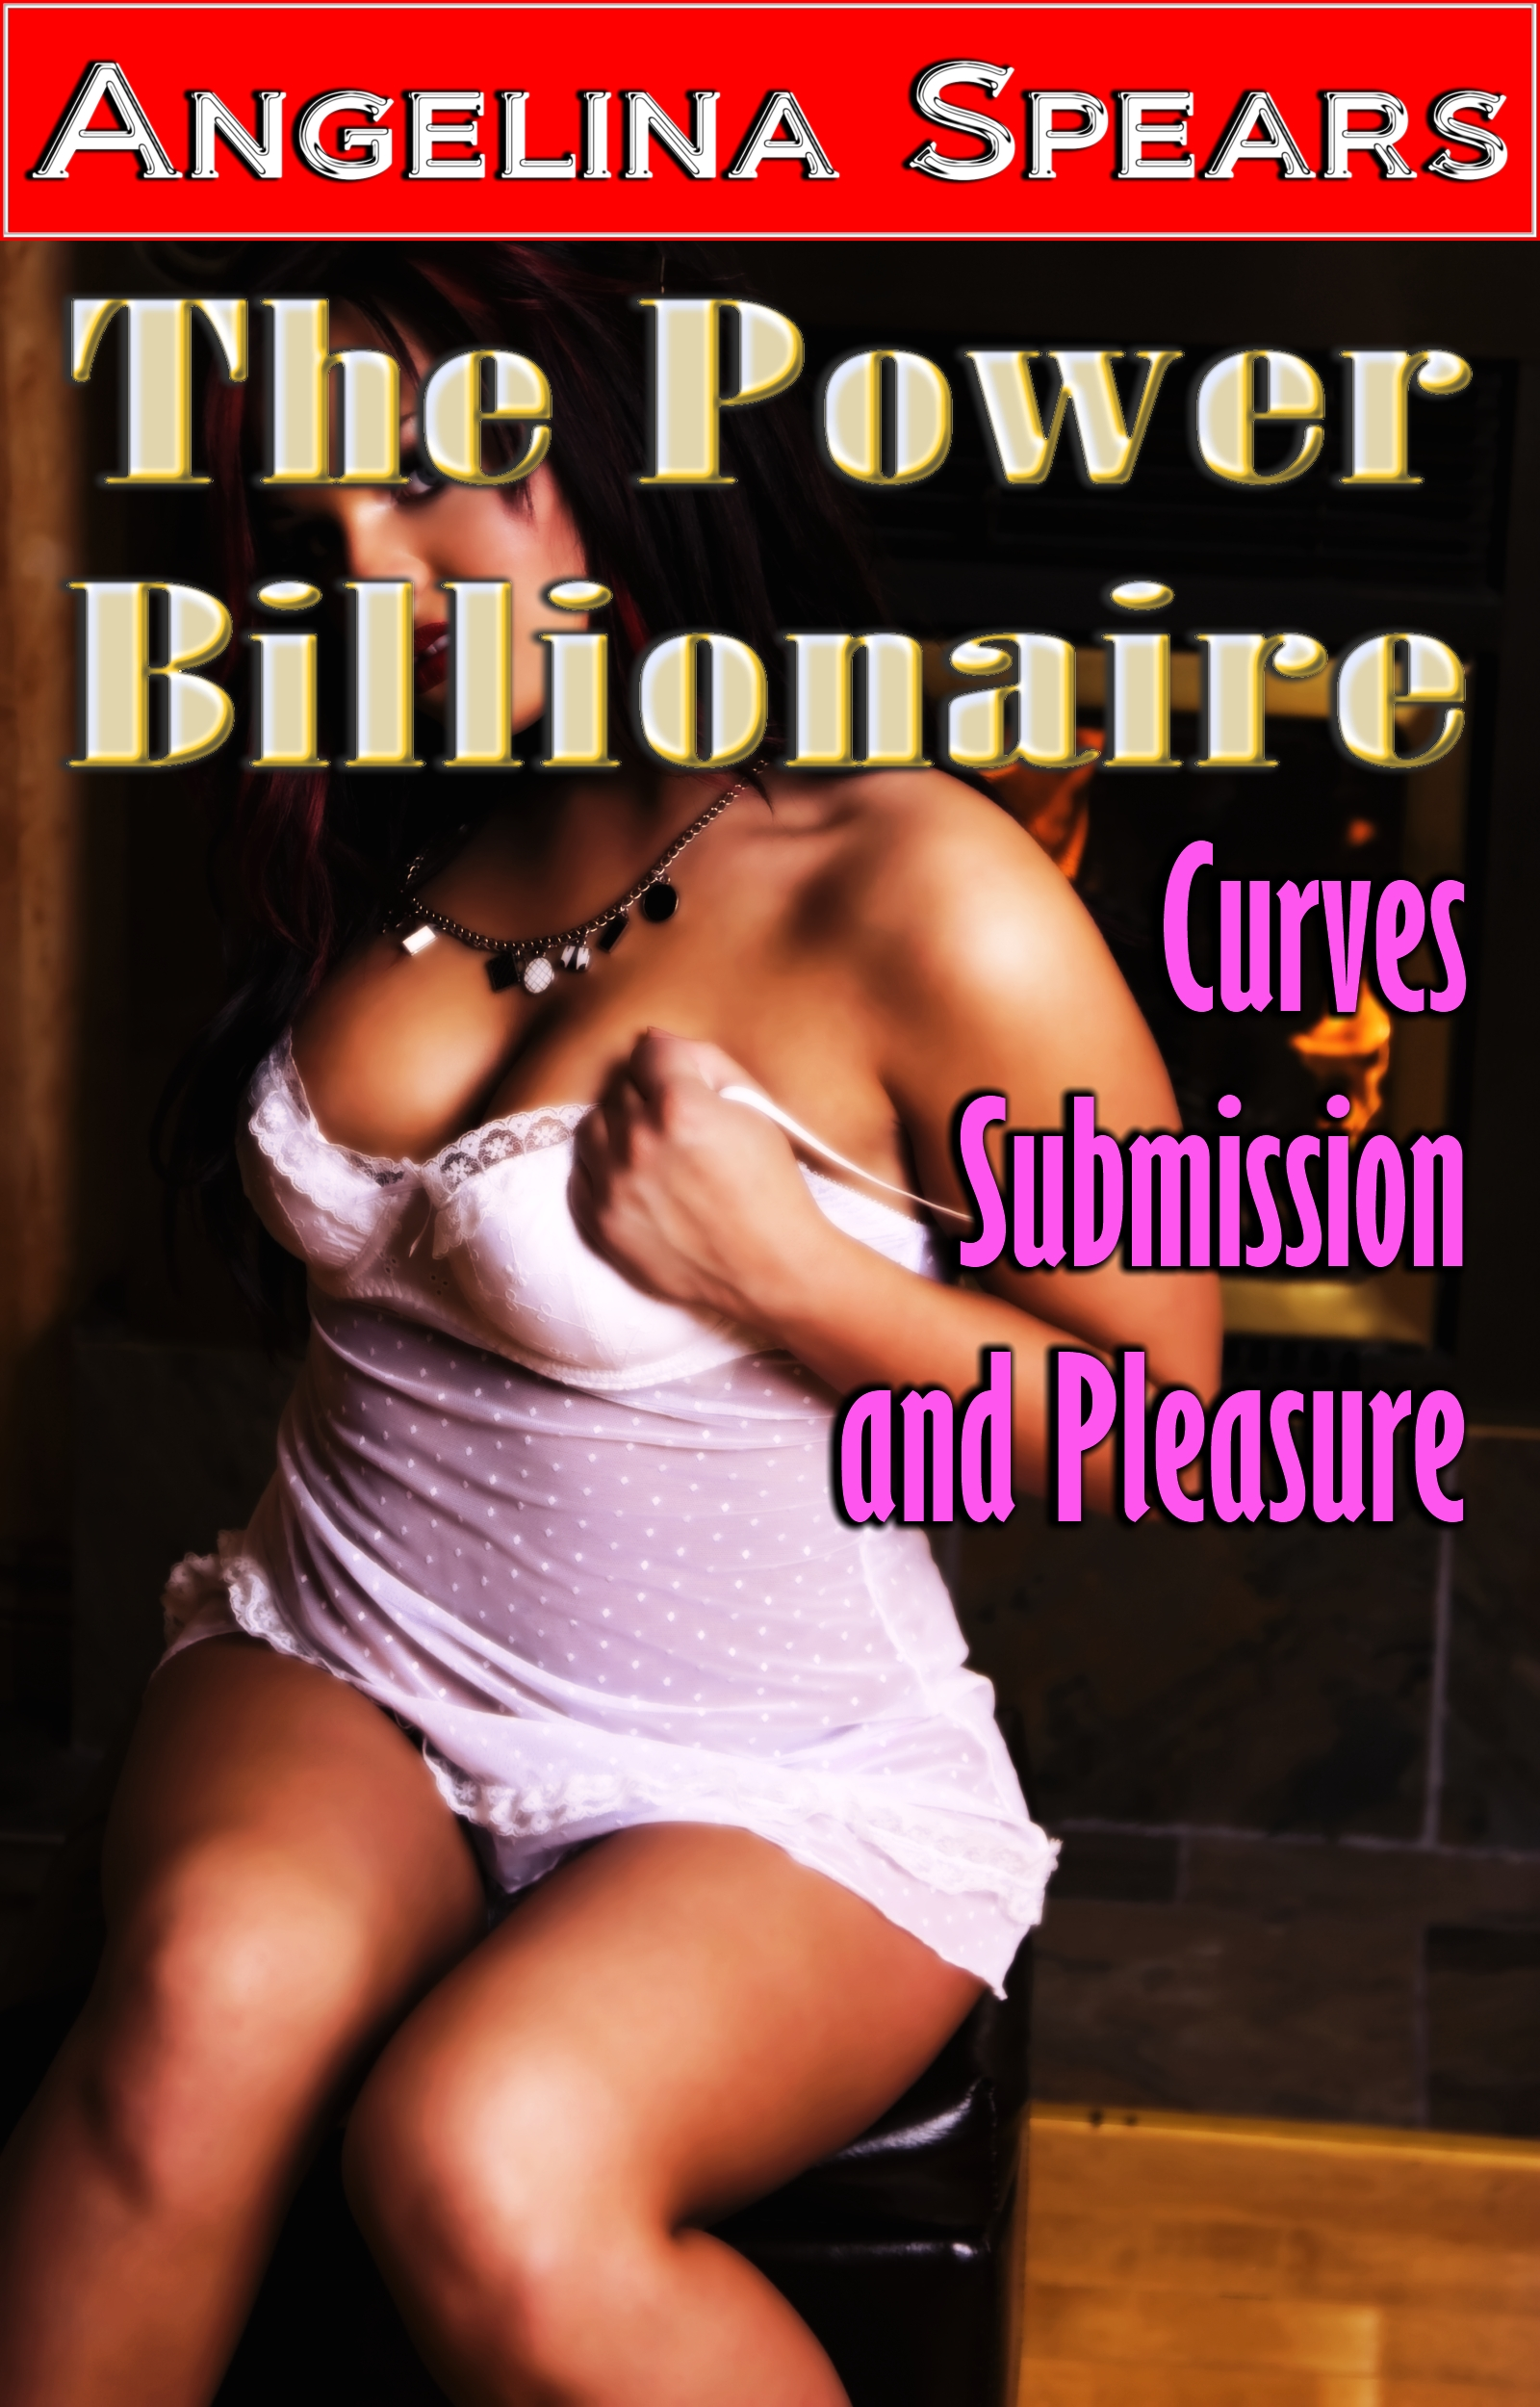 The Power Billionaire - Curves, Submission and Pleasure